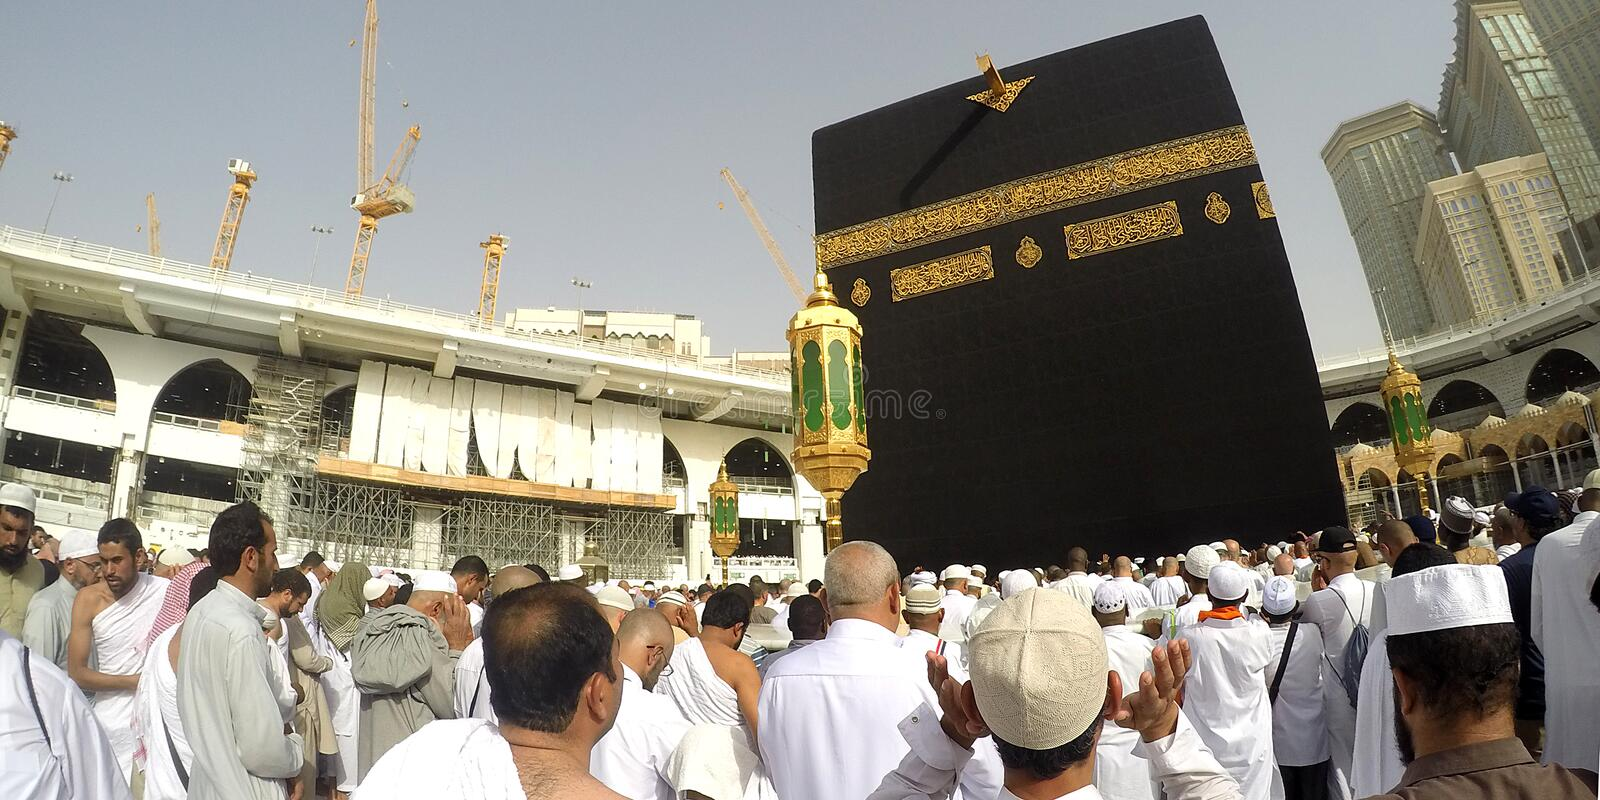 Pilgrims perform the Tawaf and Prayer. MECCA, SAUDI ARABIA, 13 April 2017 - Muslim pilgrims from all over the world gathered to perform Umrah or Hajj at the royalty free stock images